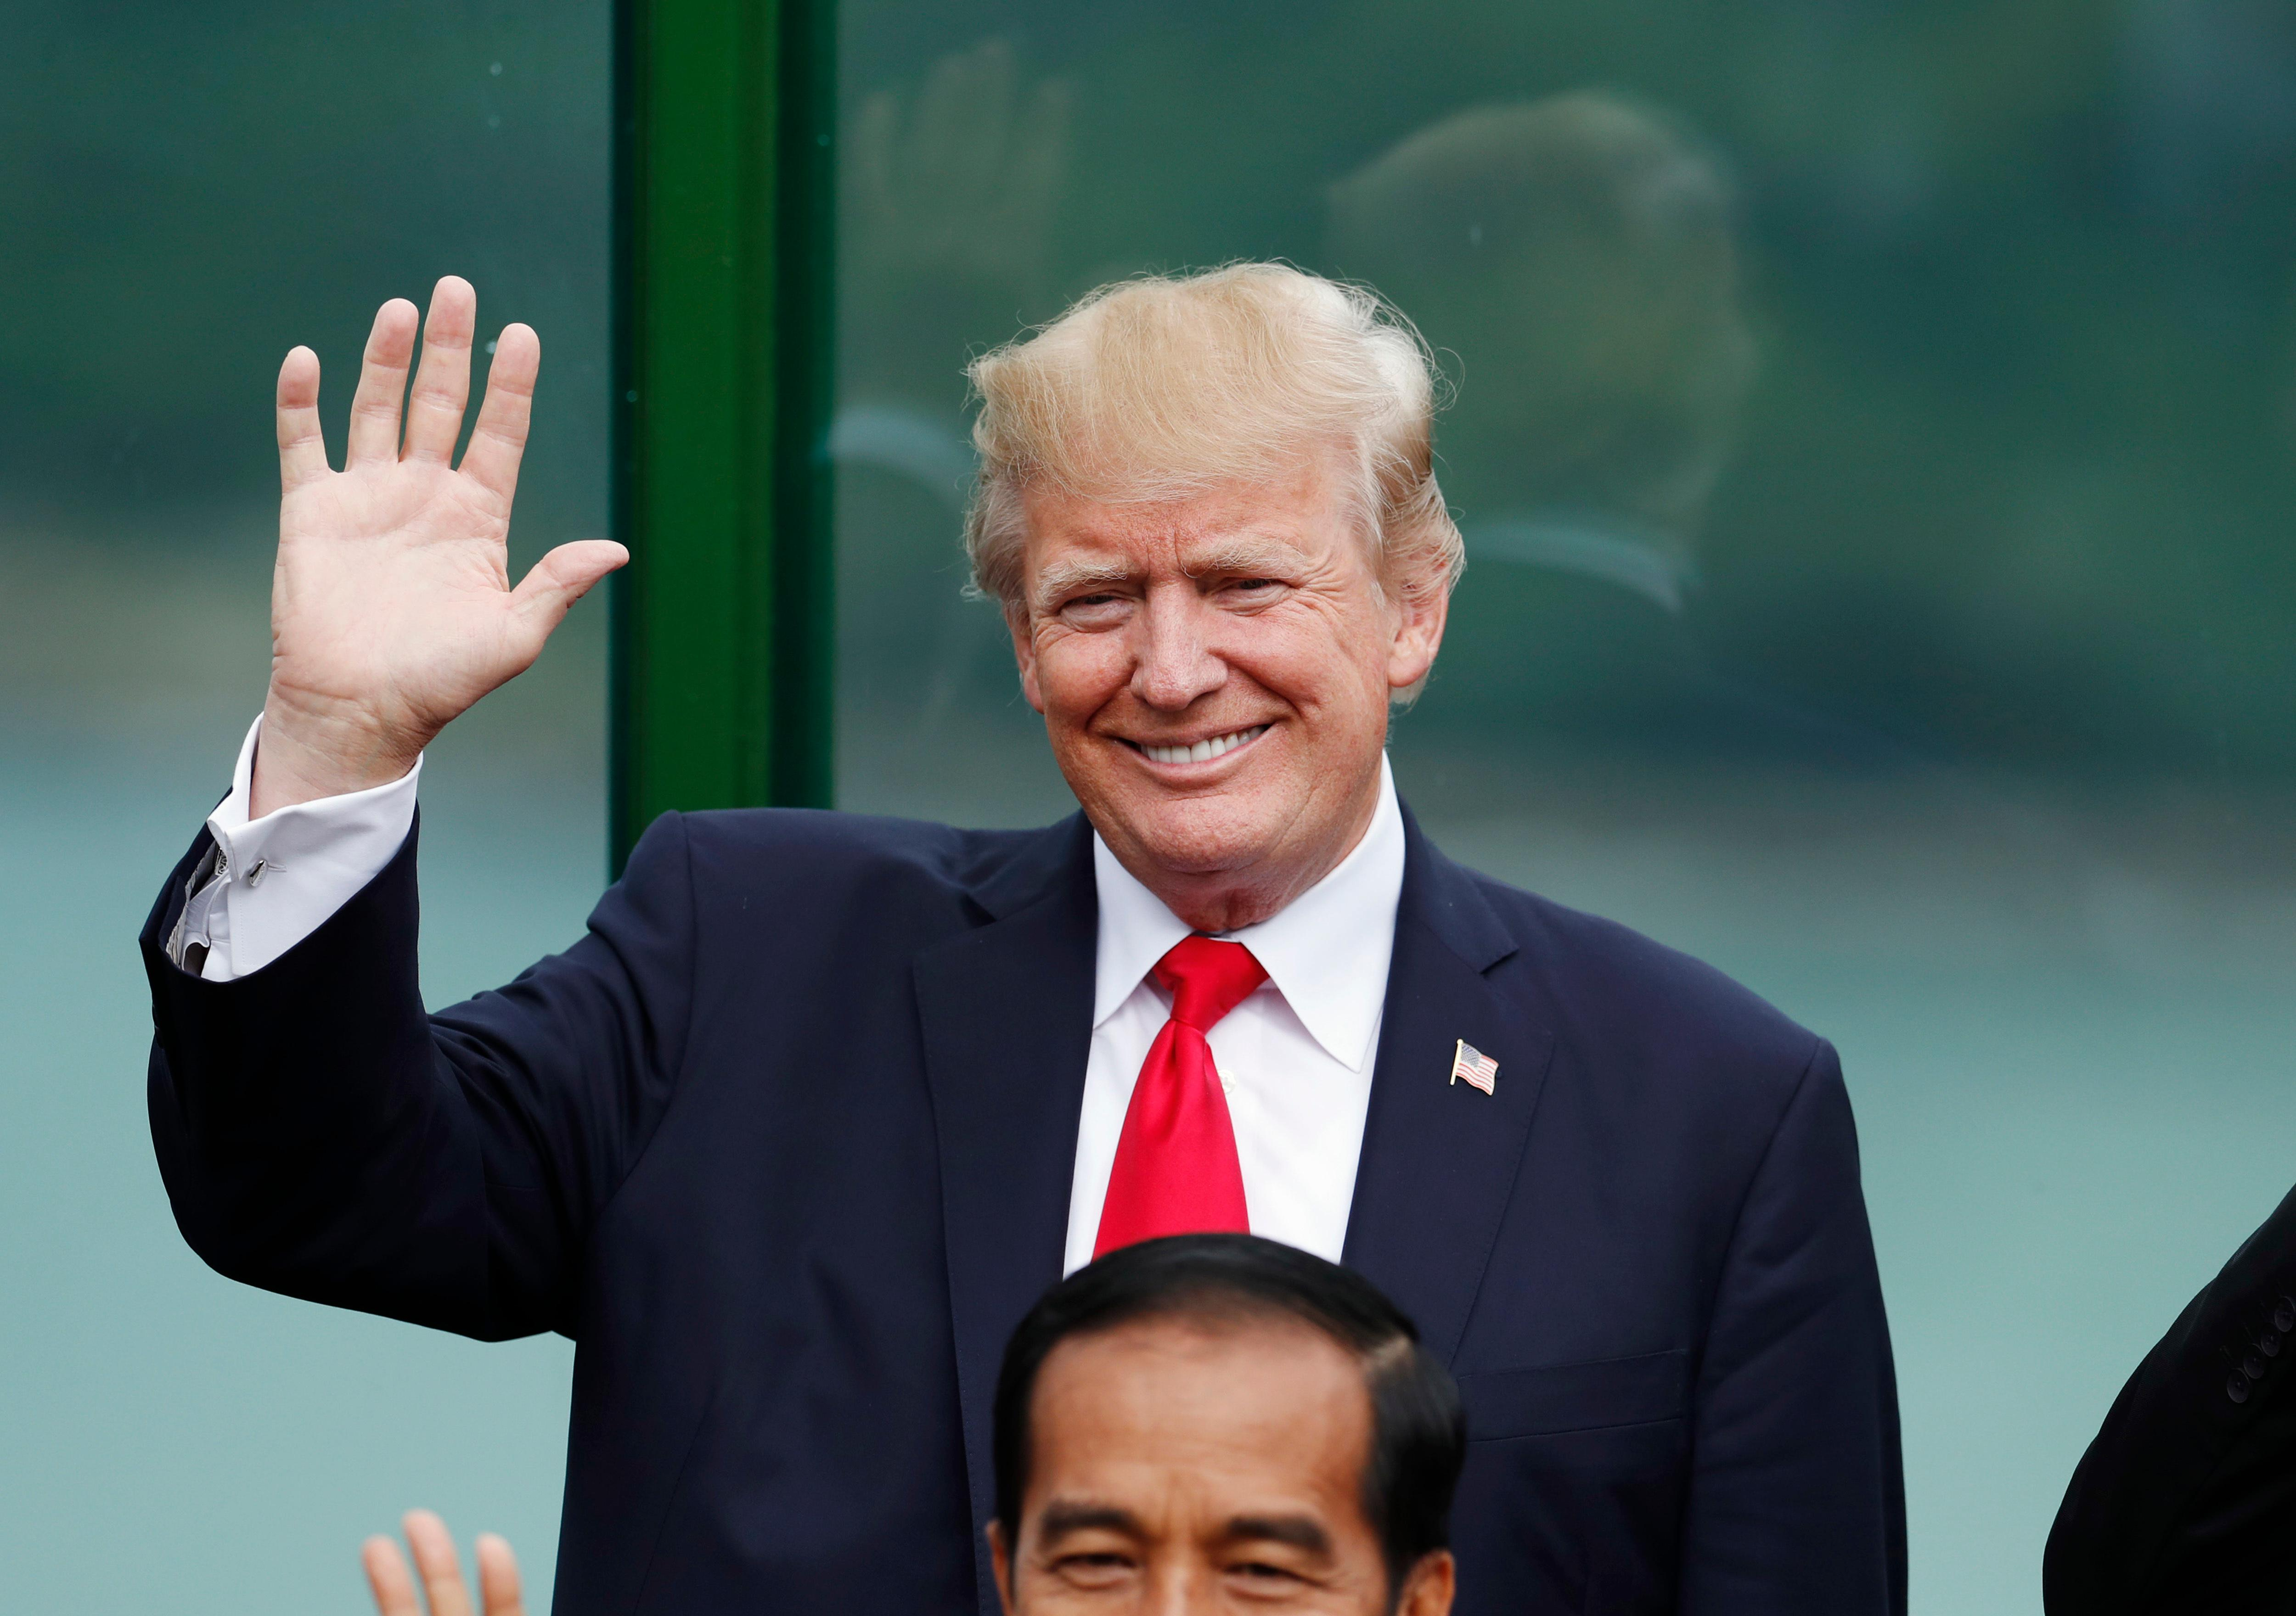 U.S. President Donald Trump holds up his hand during the family photo session at the APEC Summit in Danang, Vietnam, Saturday, Nov. 11, 2017. (Jorge Silva/Pool Photo via AP)